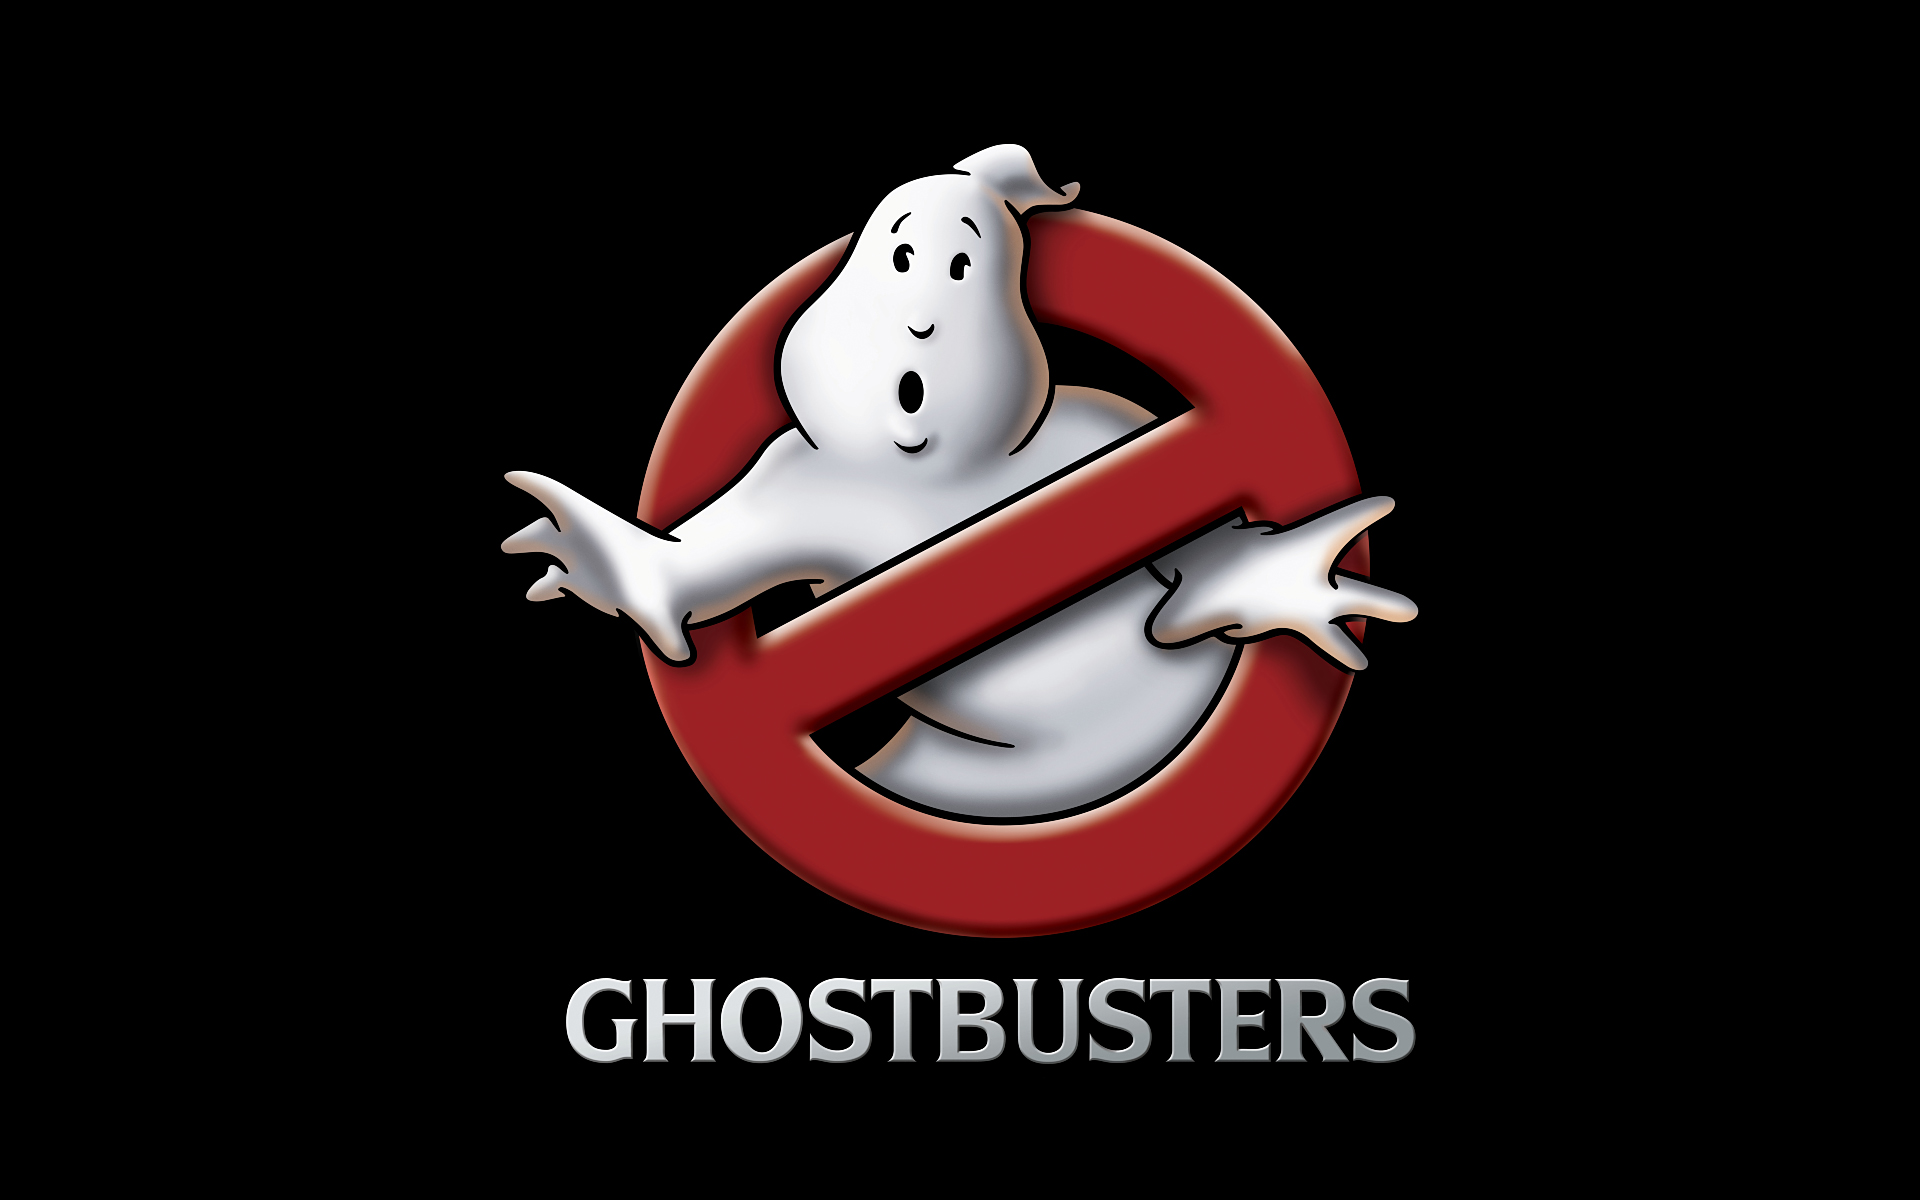 Sony announces all-male 'Ghostbusters' as counterpart to the upcoming female cast reboot